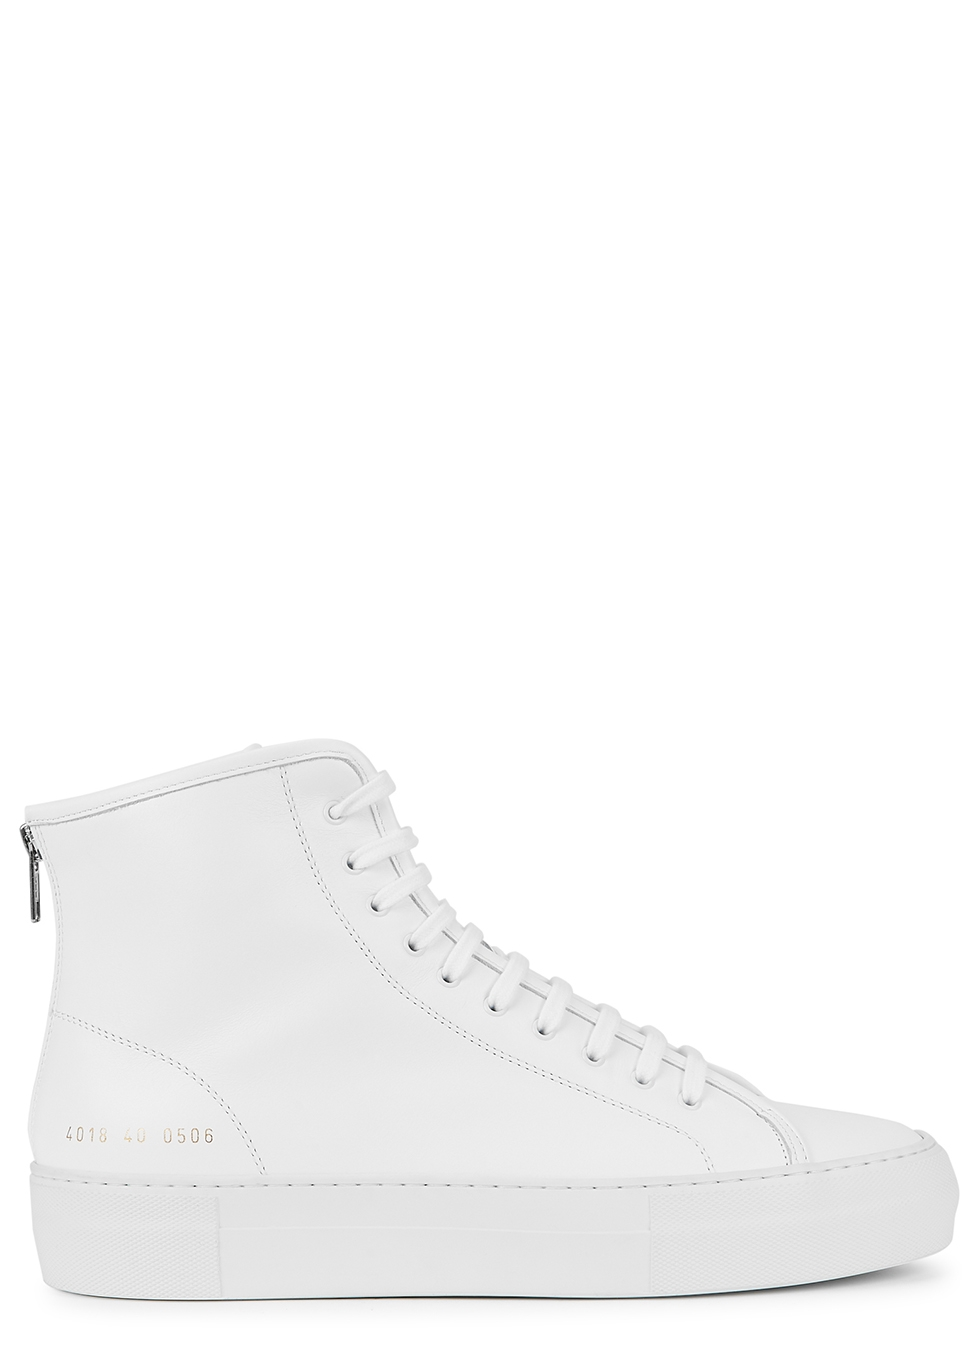 Common Projects Tournament white